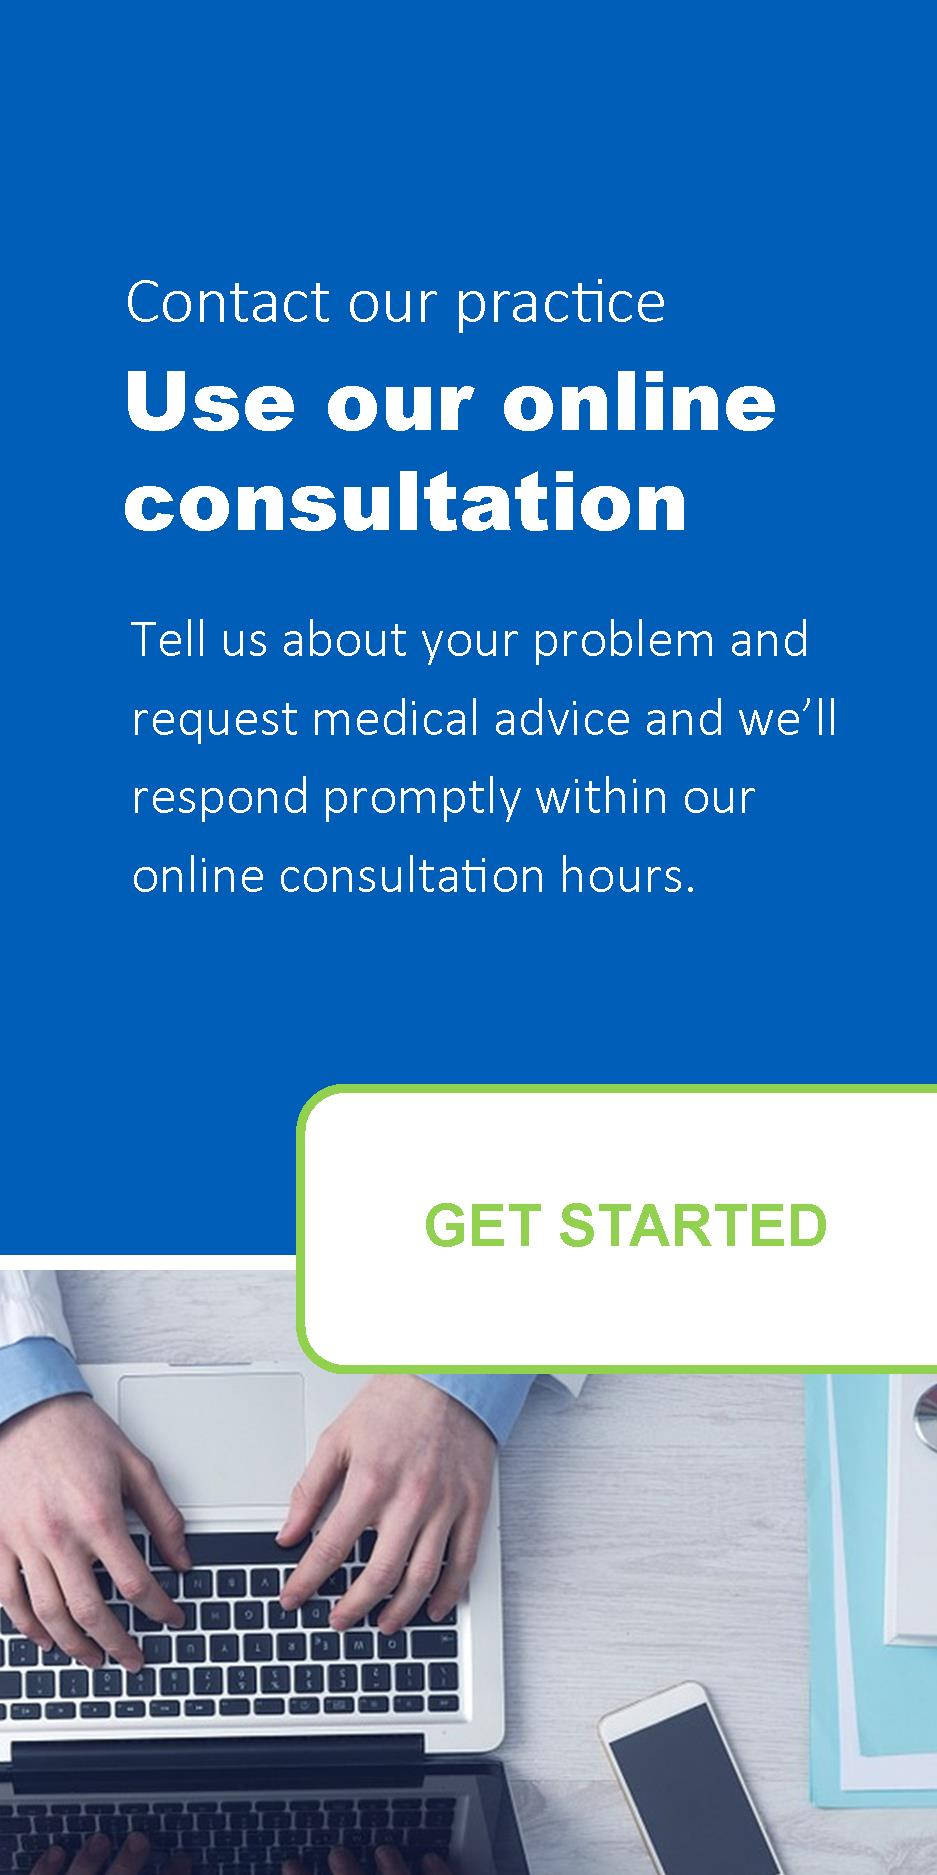 Contact our practice use our online consultation tell us about your problem and request medical advice and we will respond promptly within our online consultation hours get started